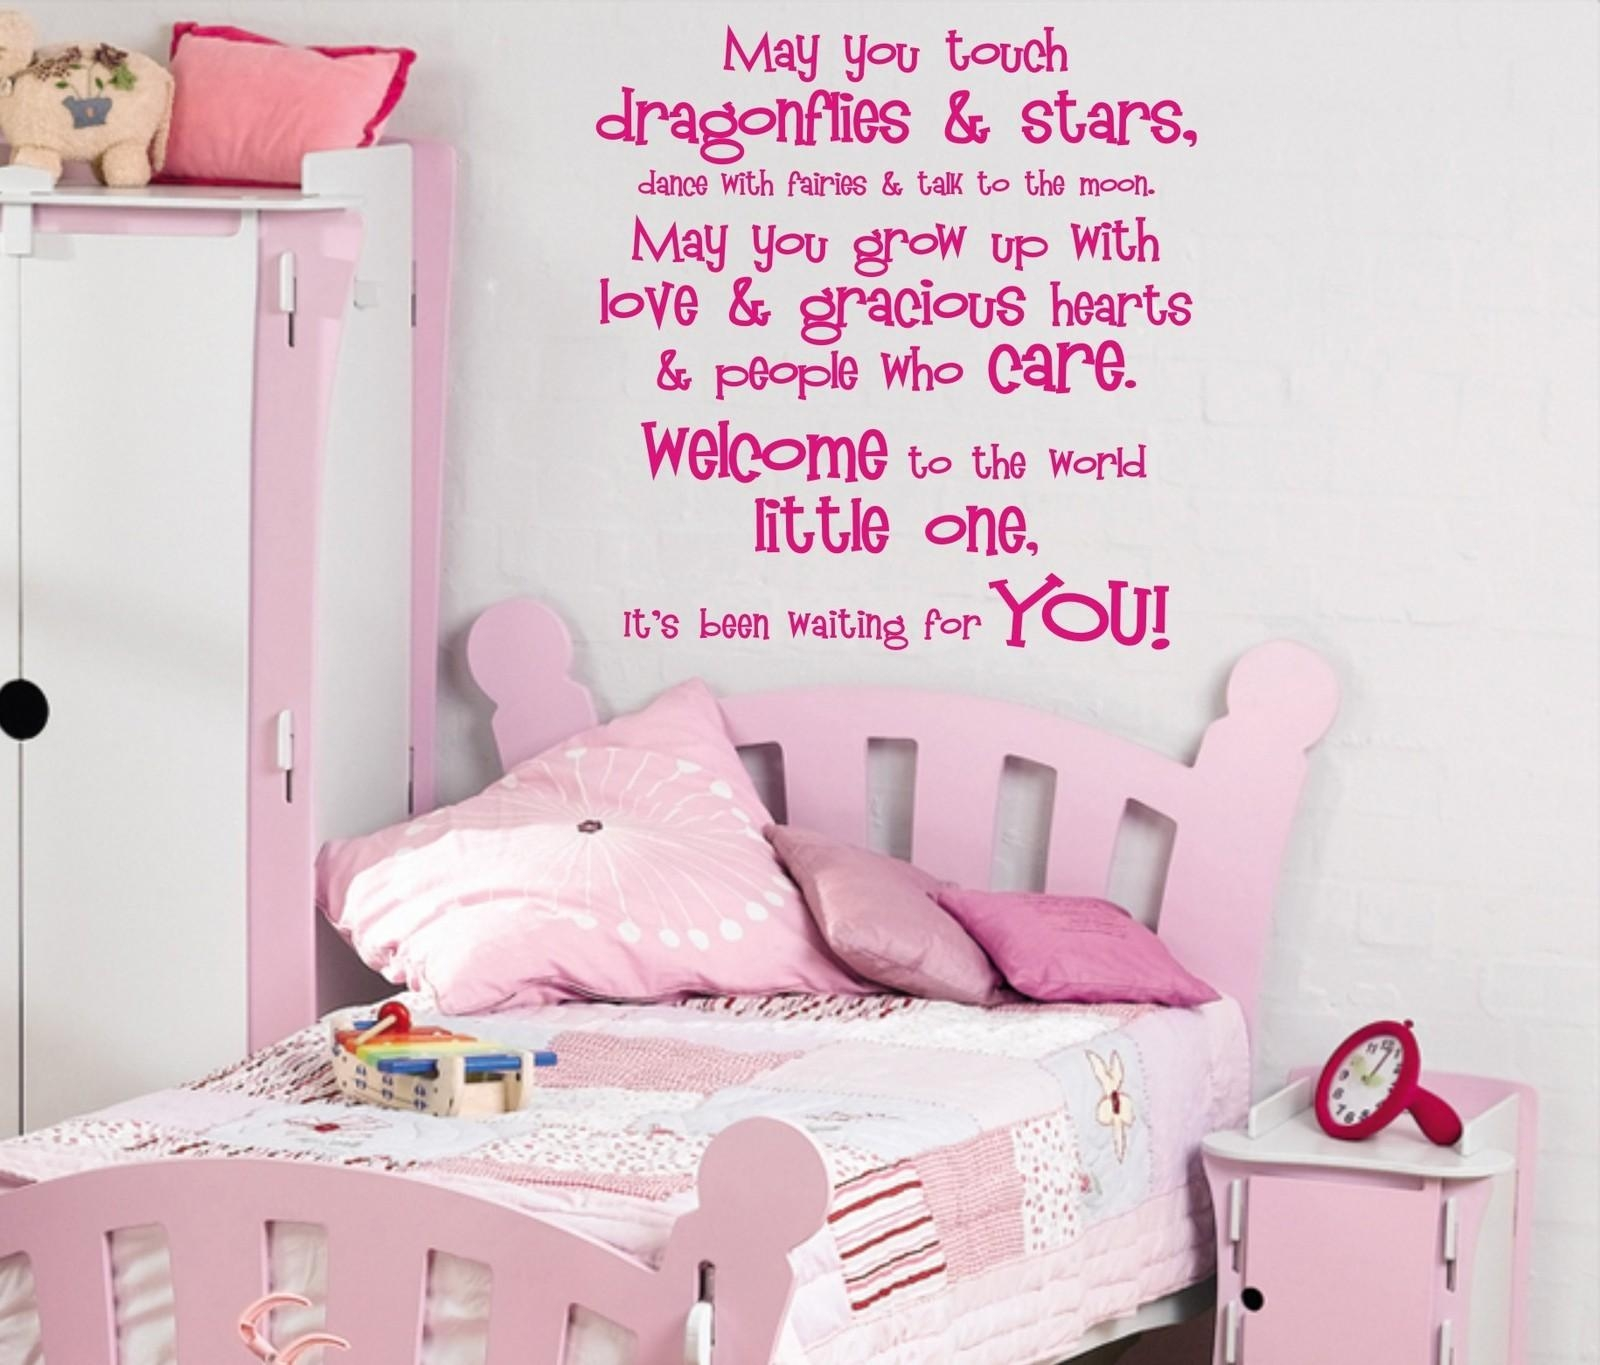 Bedroom : Dazzling Storage Teenagers Of Stairs Boy Desk And Couch Within Wall Art For Little Girl Room (Image 4 of 20)